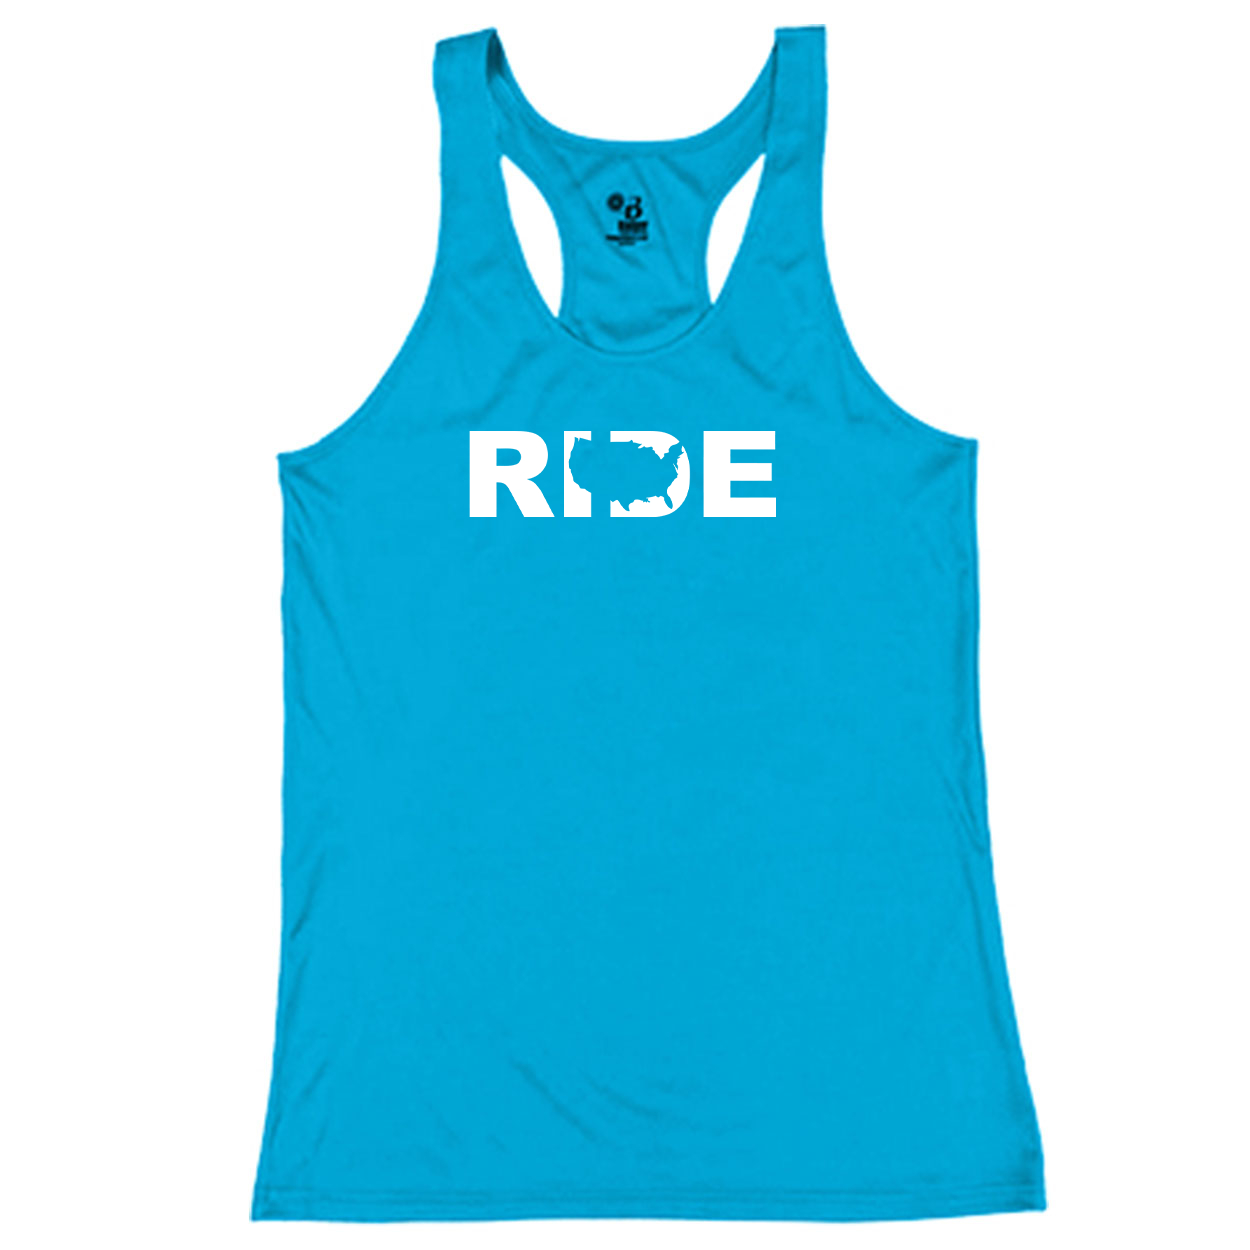 Ride United States Classic Youth Girls Performance Racerback Tank Top Electric Blue (White Logo)